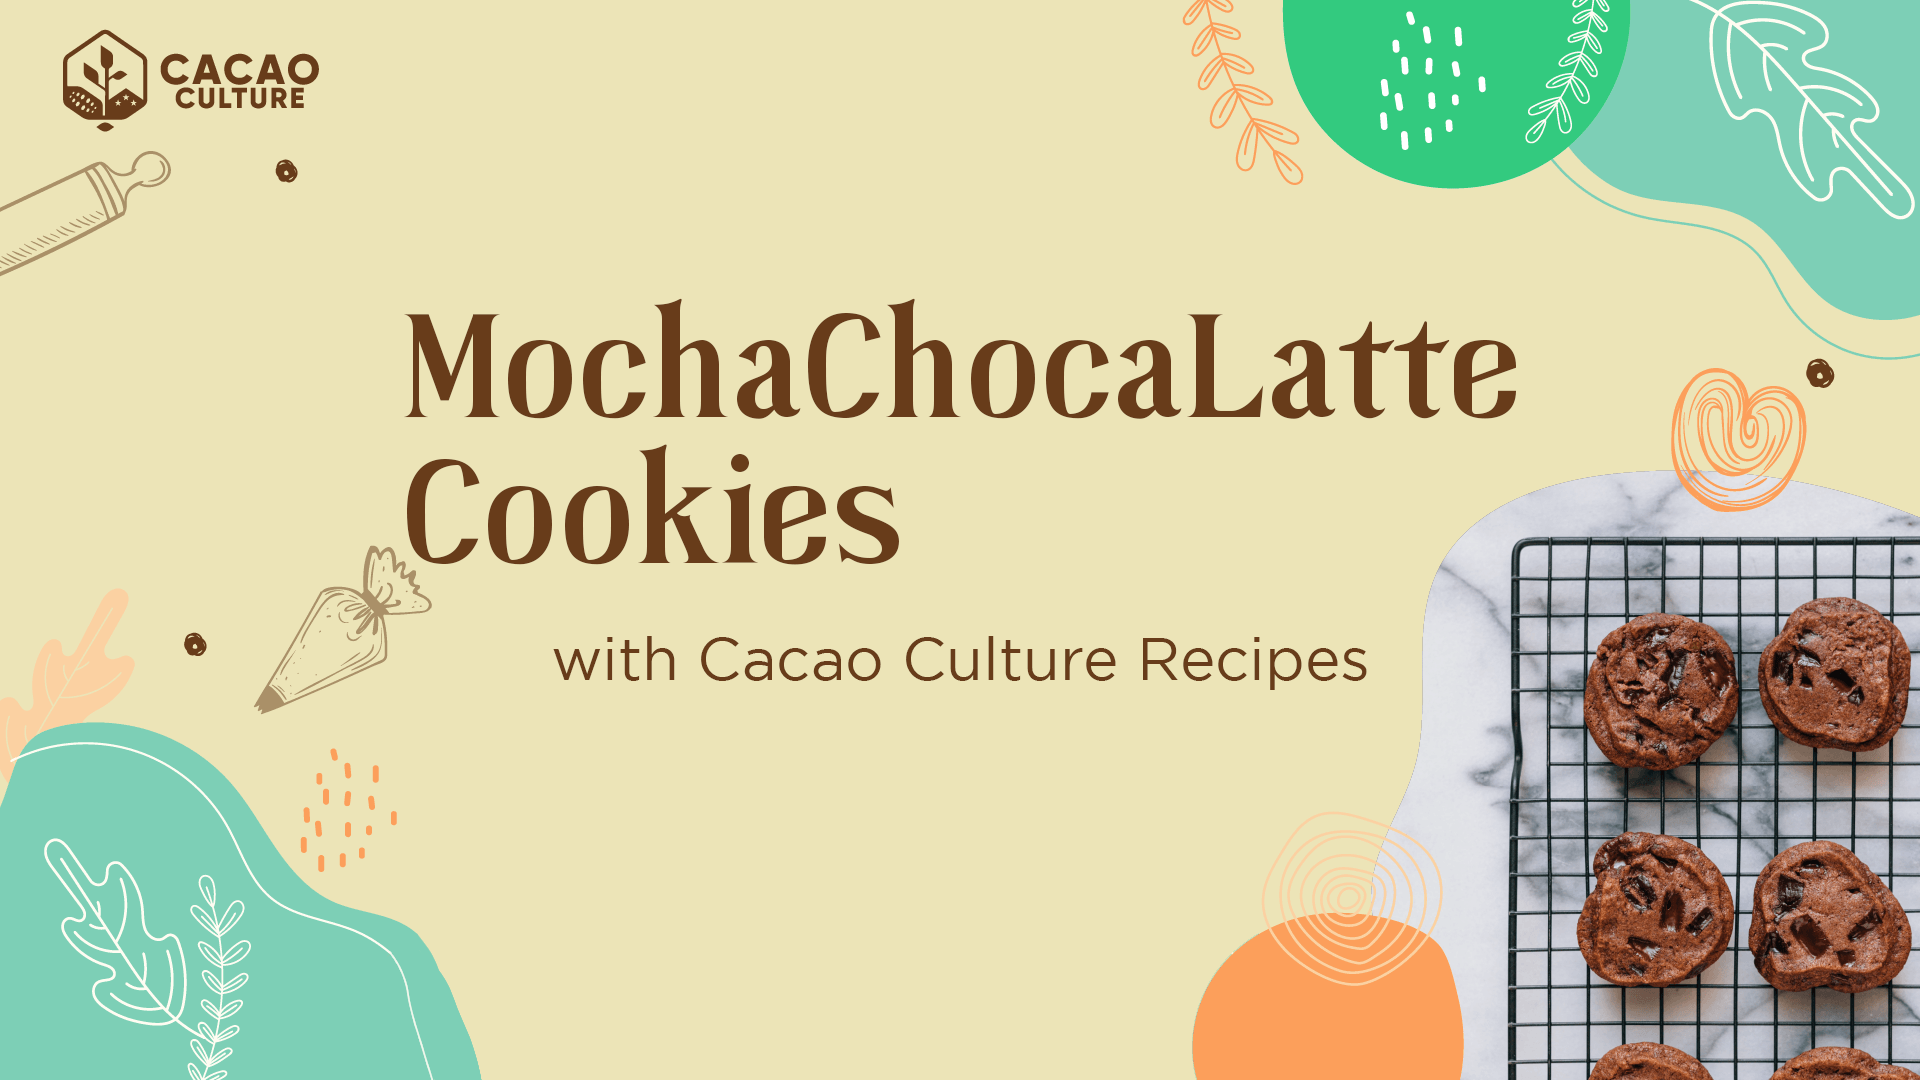 MochaChocaLatte Cookies | Cacao Culture Recipes